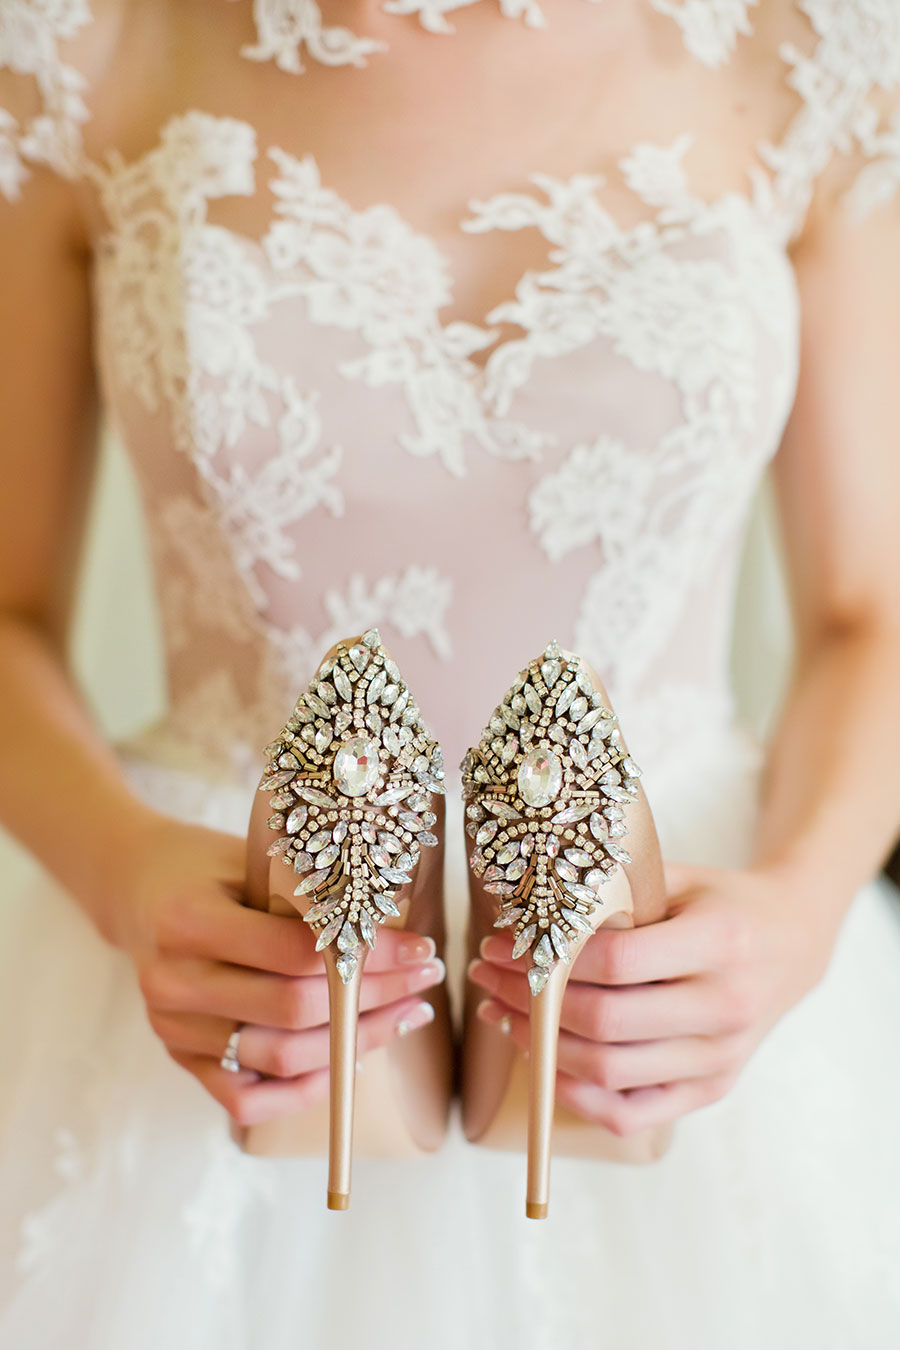 Soft Romantic Pastel Peach Wedding Inspiration peach shoes with crystal design